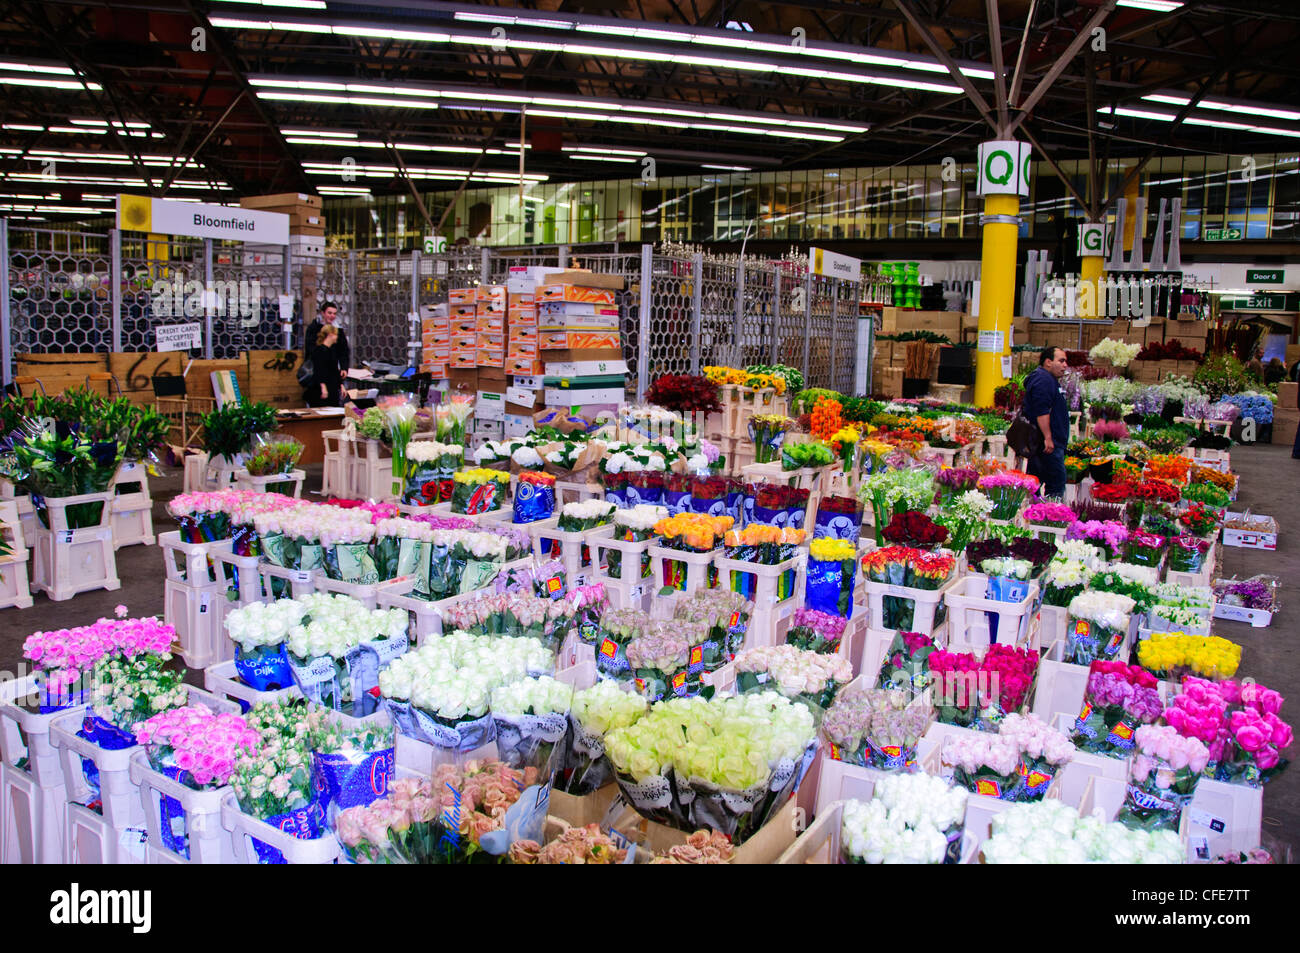 Covent garden flower market interior small 2 - New Covent Garden Market Wholesale Market Displays Of Fruit Flowers Vegetables